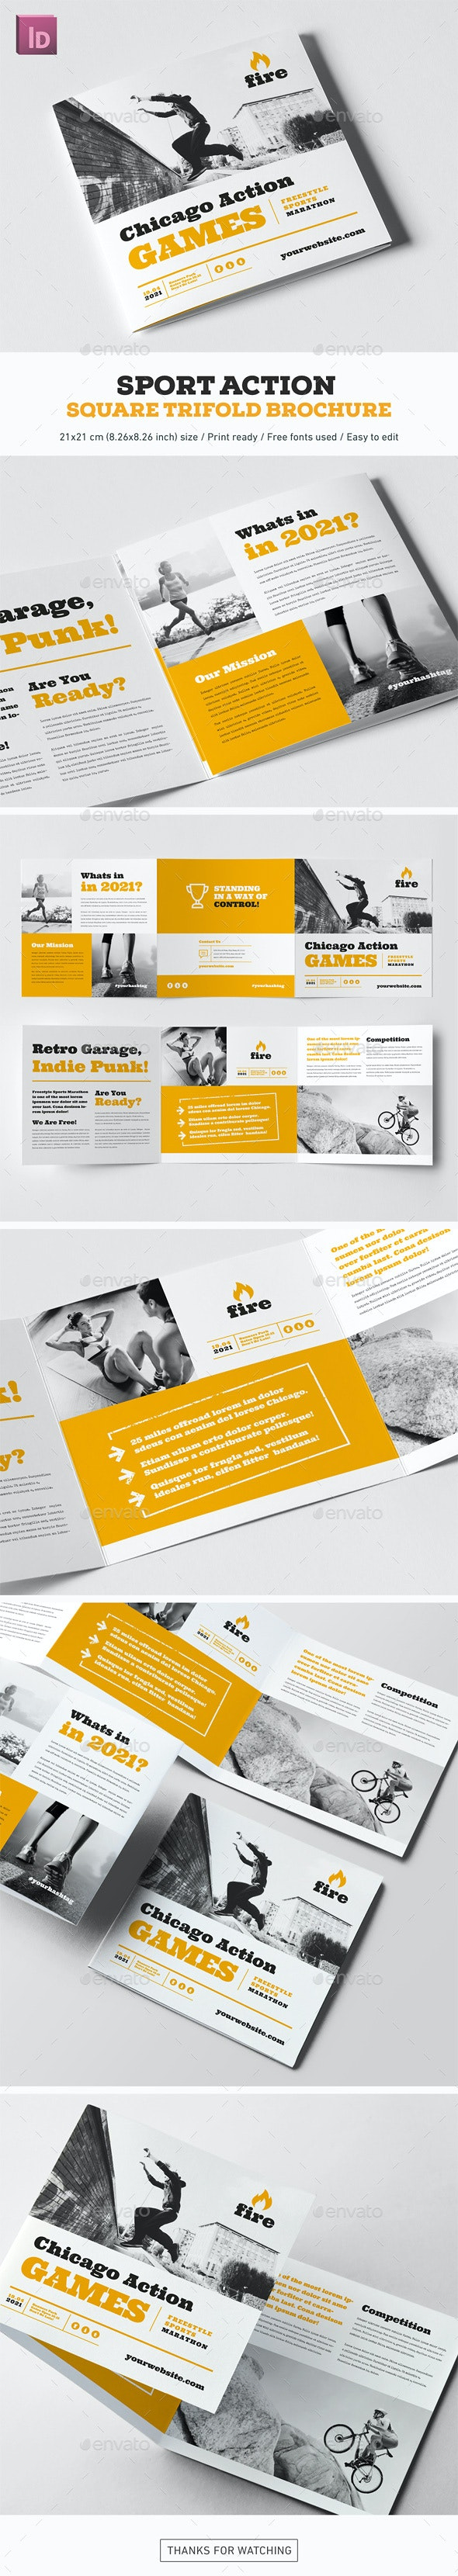 Sport Action Square Trifold Brochure - Brochures Print Templates